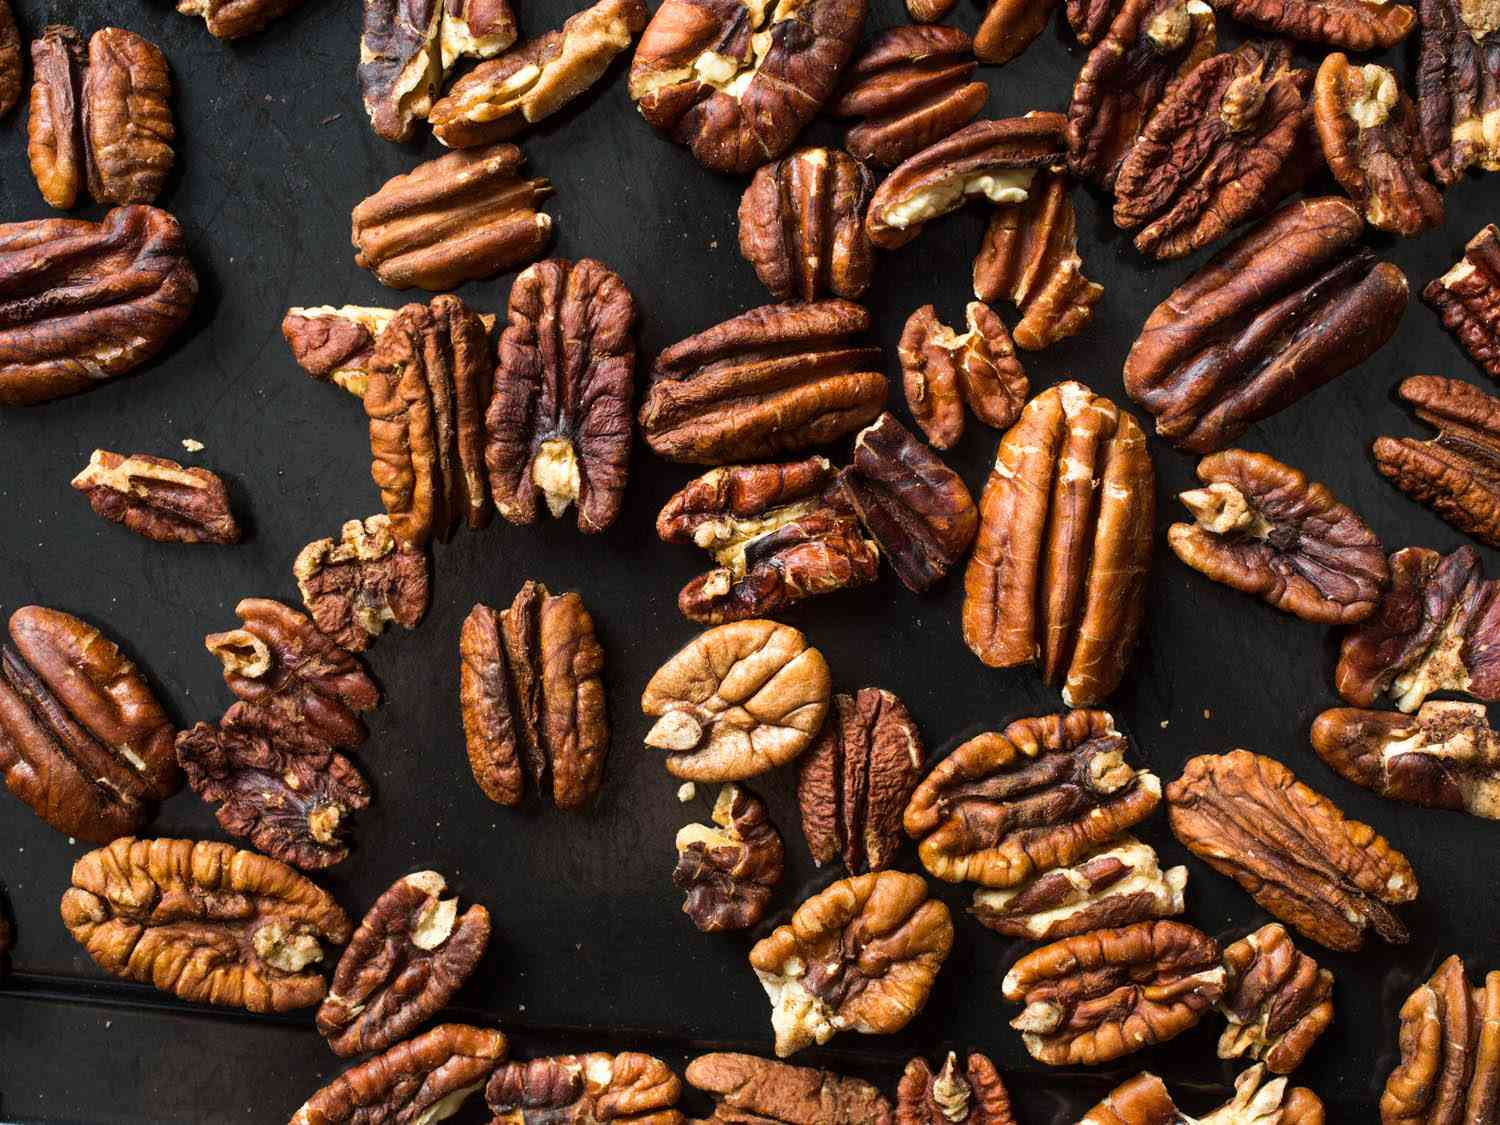 Overhead shot of raw pecan halves on a black background